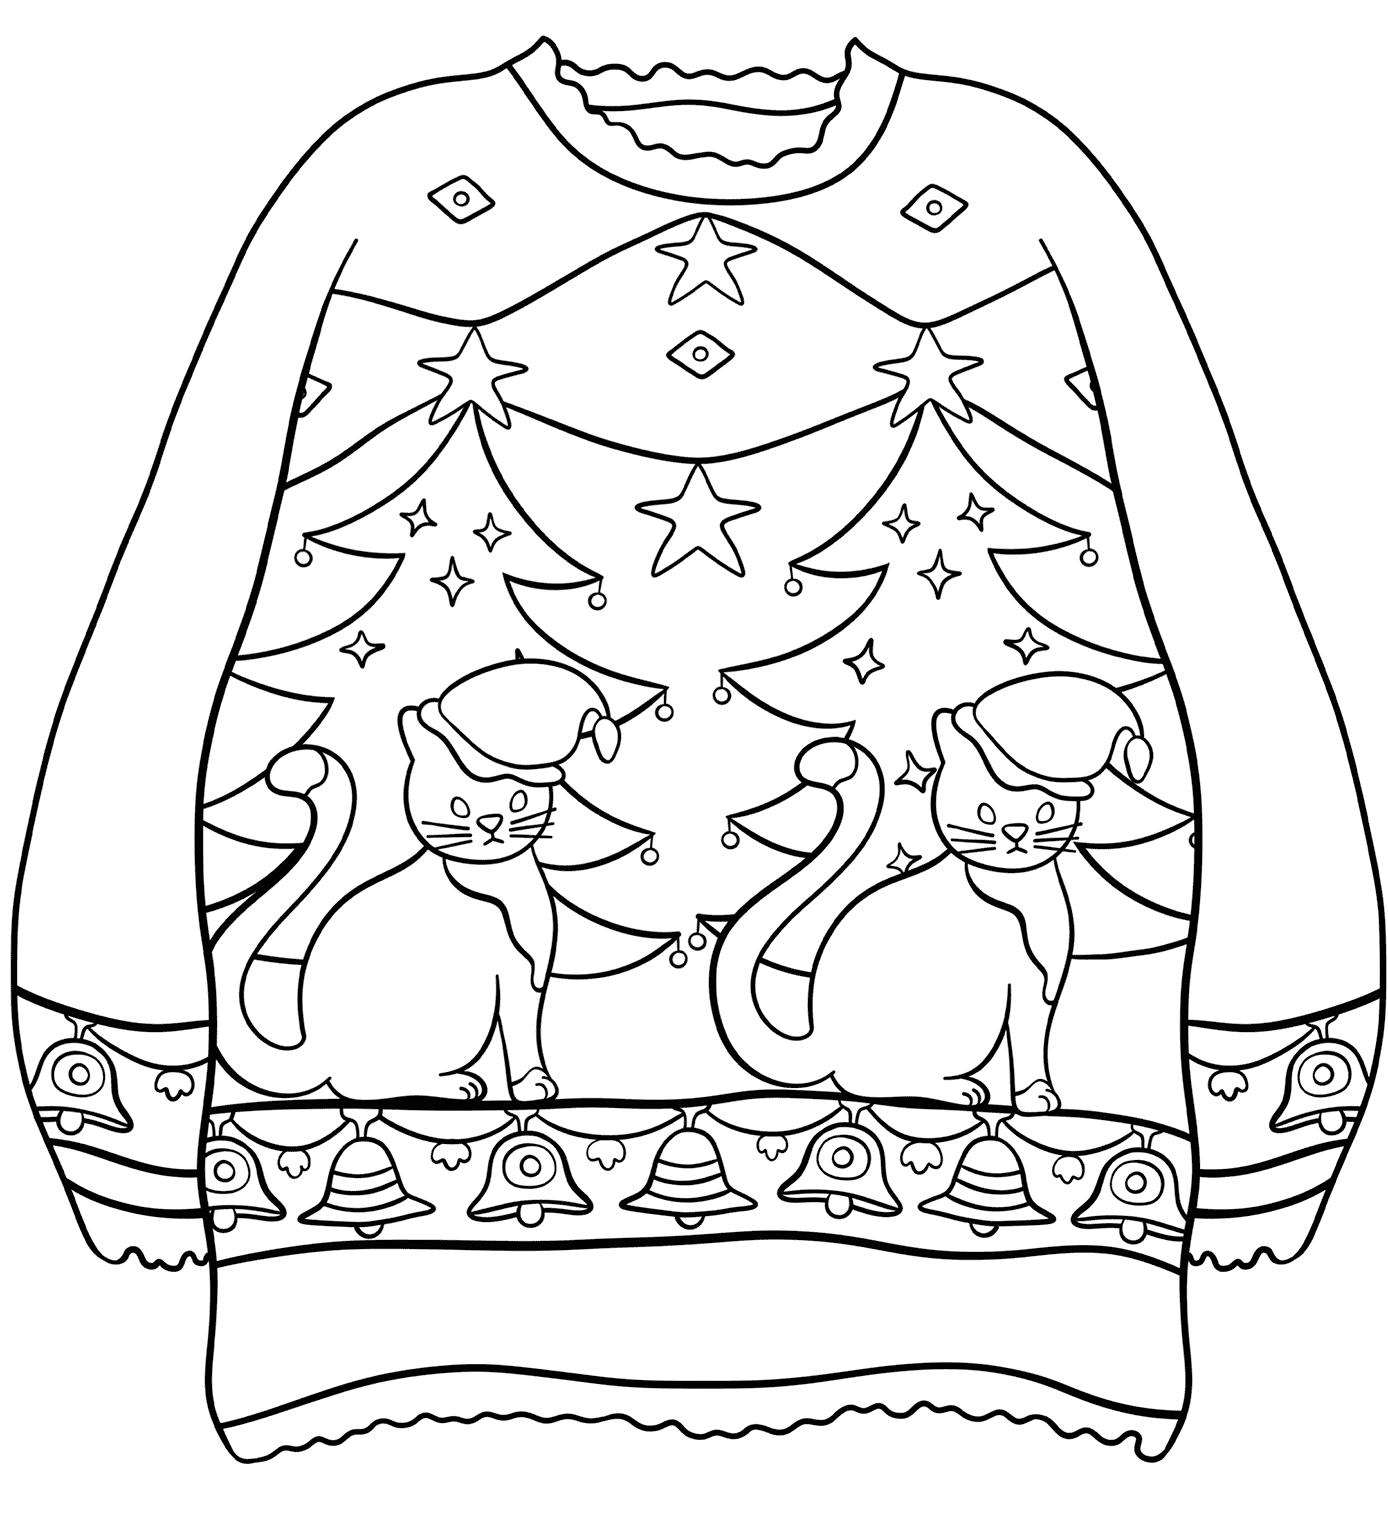 Sweater with Christmas Trees and Cats Coloring Page